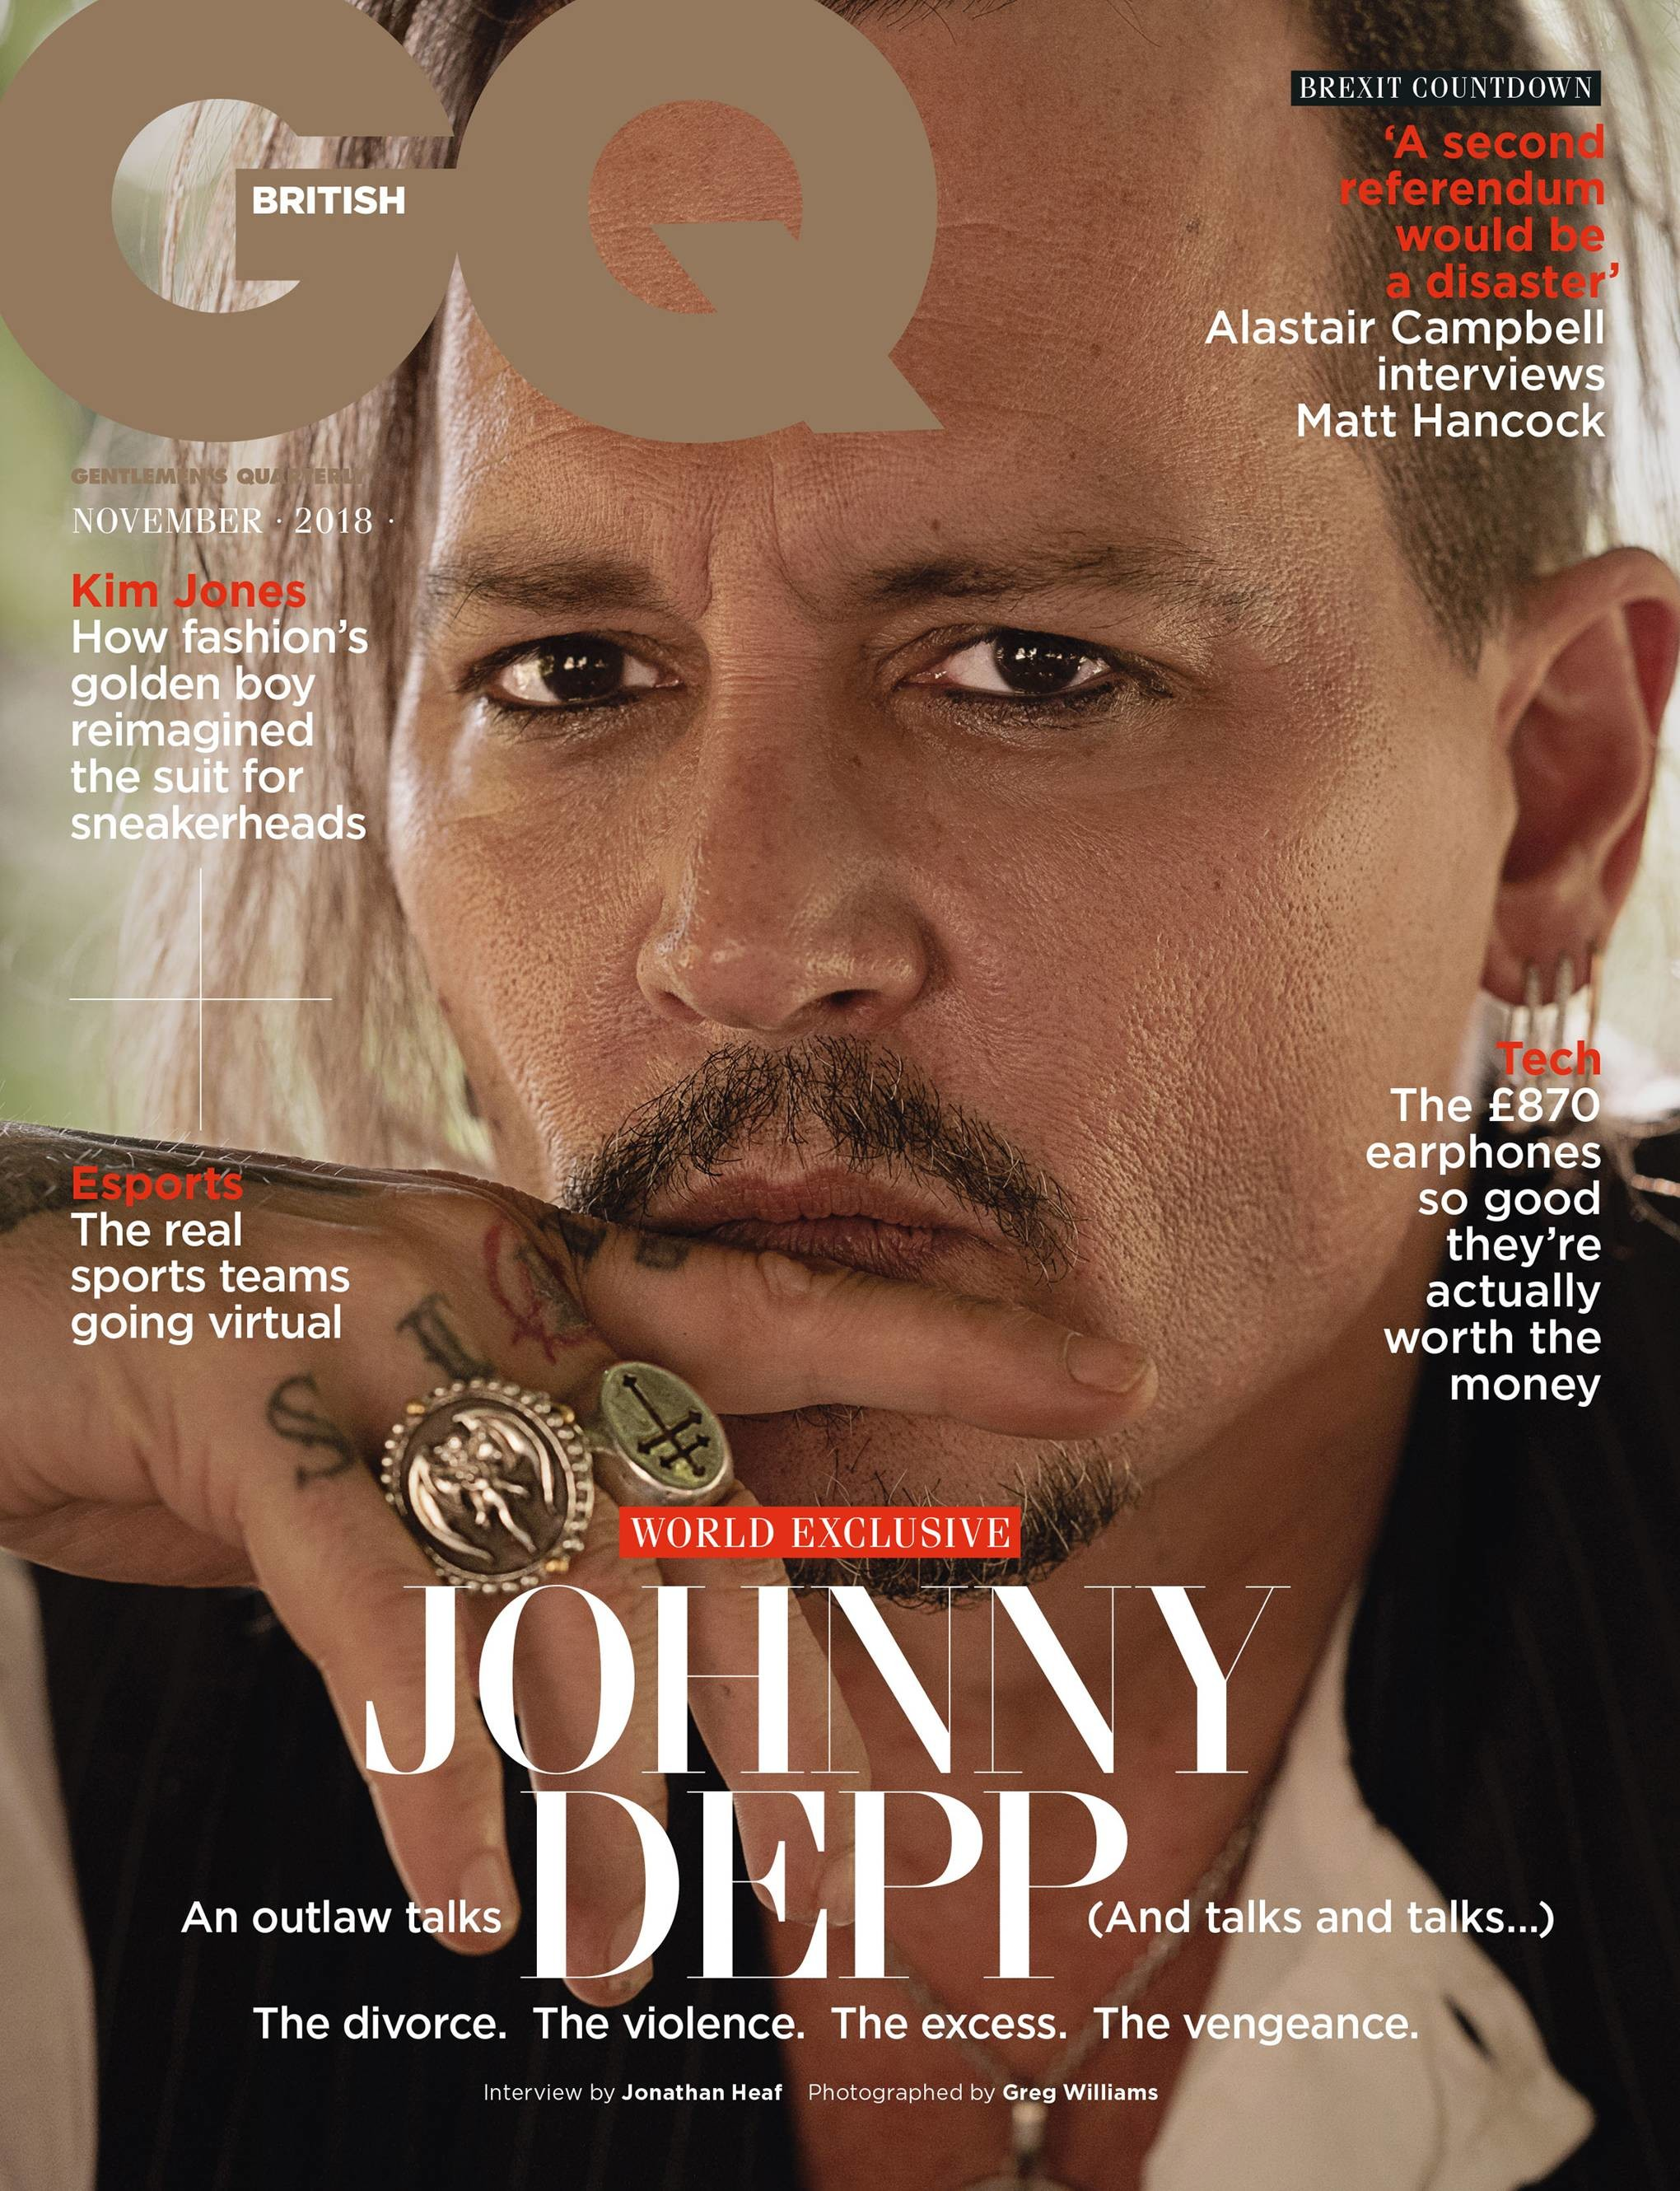 2040x2660 Johnny Depp interview 2018: A world exclusive discussion with the actor |  British GQ